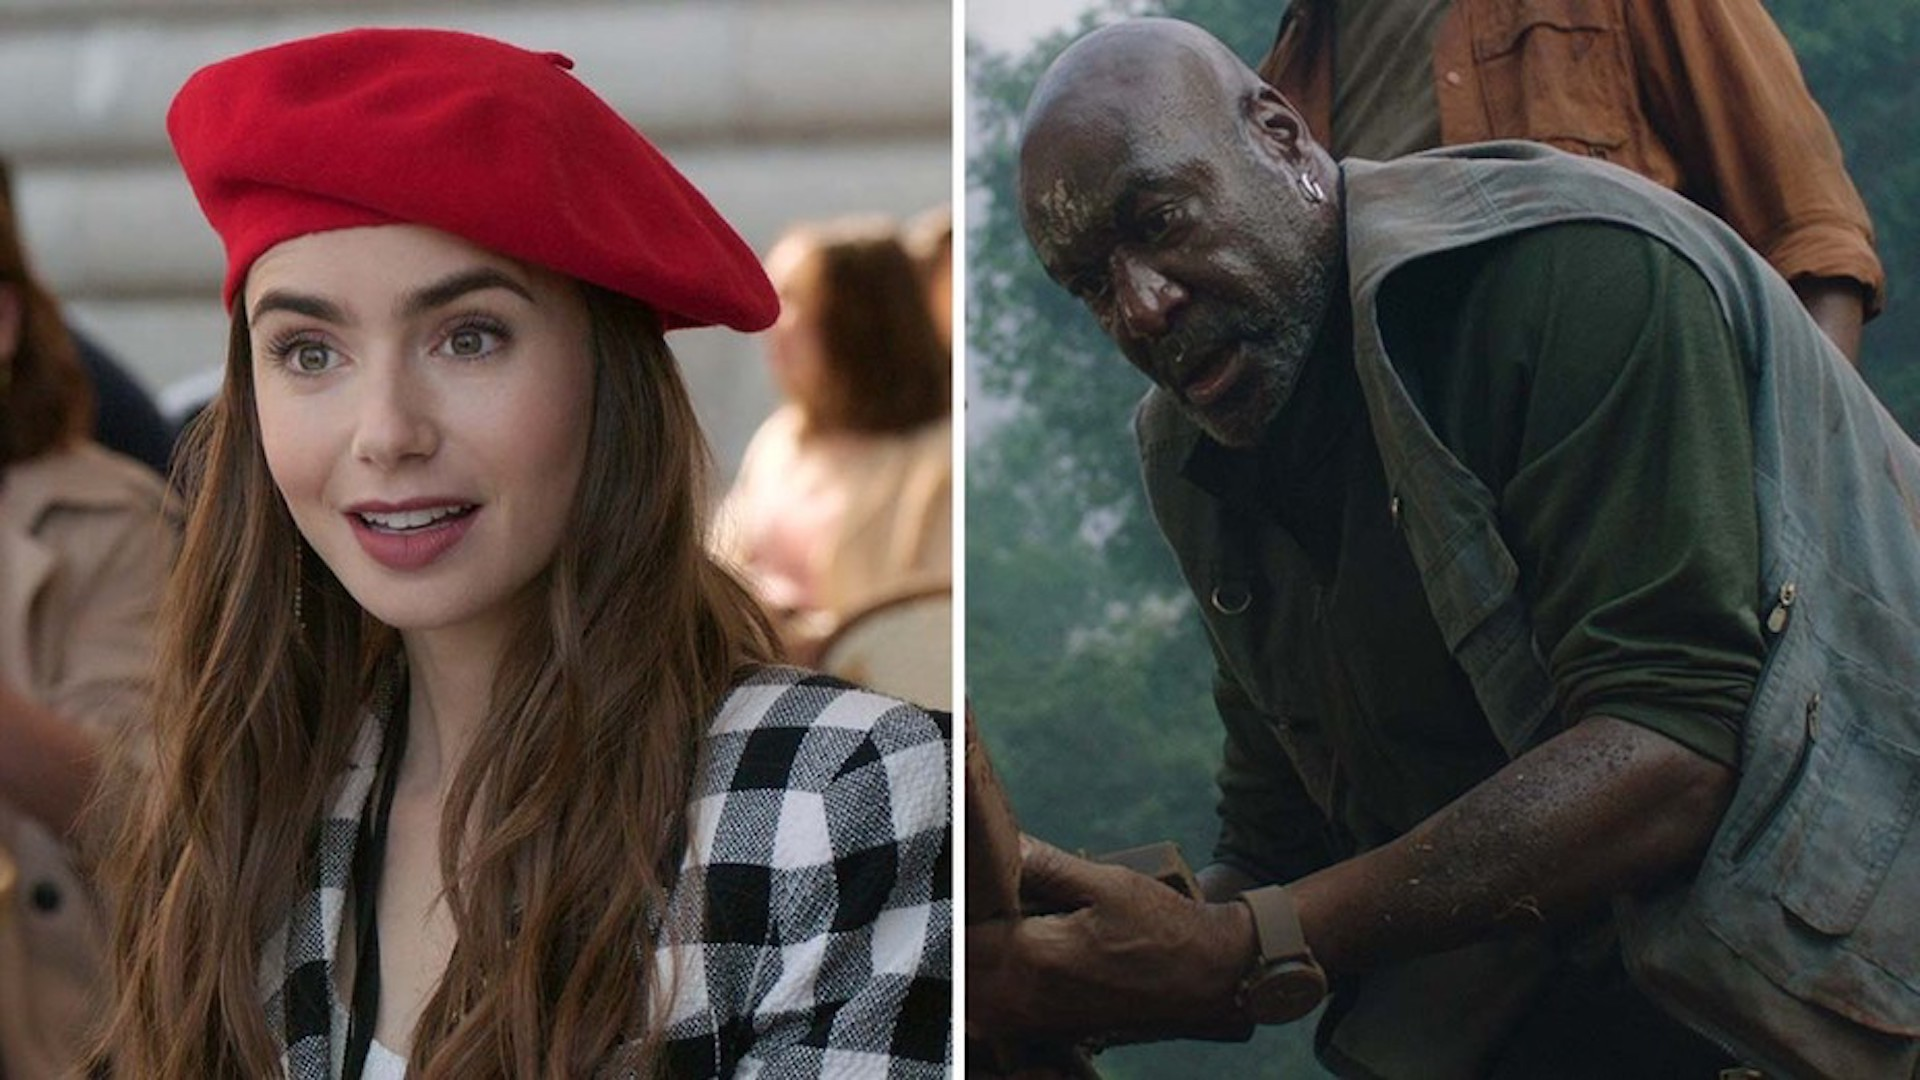 Golden Globes Snubs and Surprises: 'Emily in Paris,' 'Music' Earn Nods While 'Da 5 Bloods,' 'I May Destroy You' Shut Out